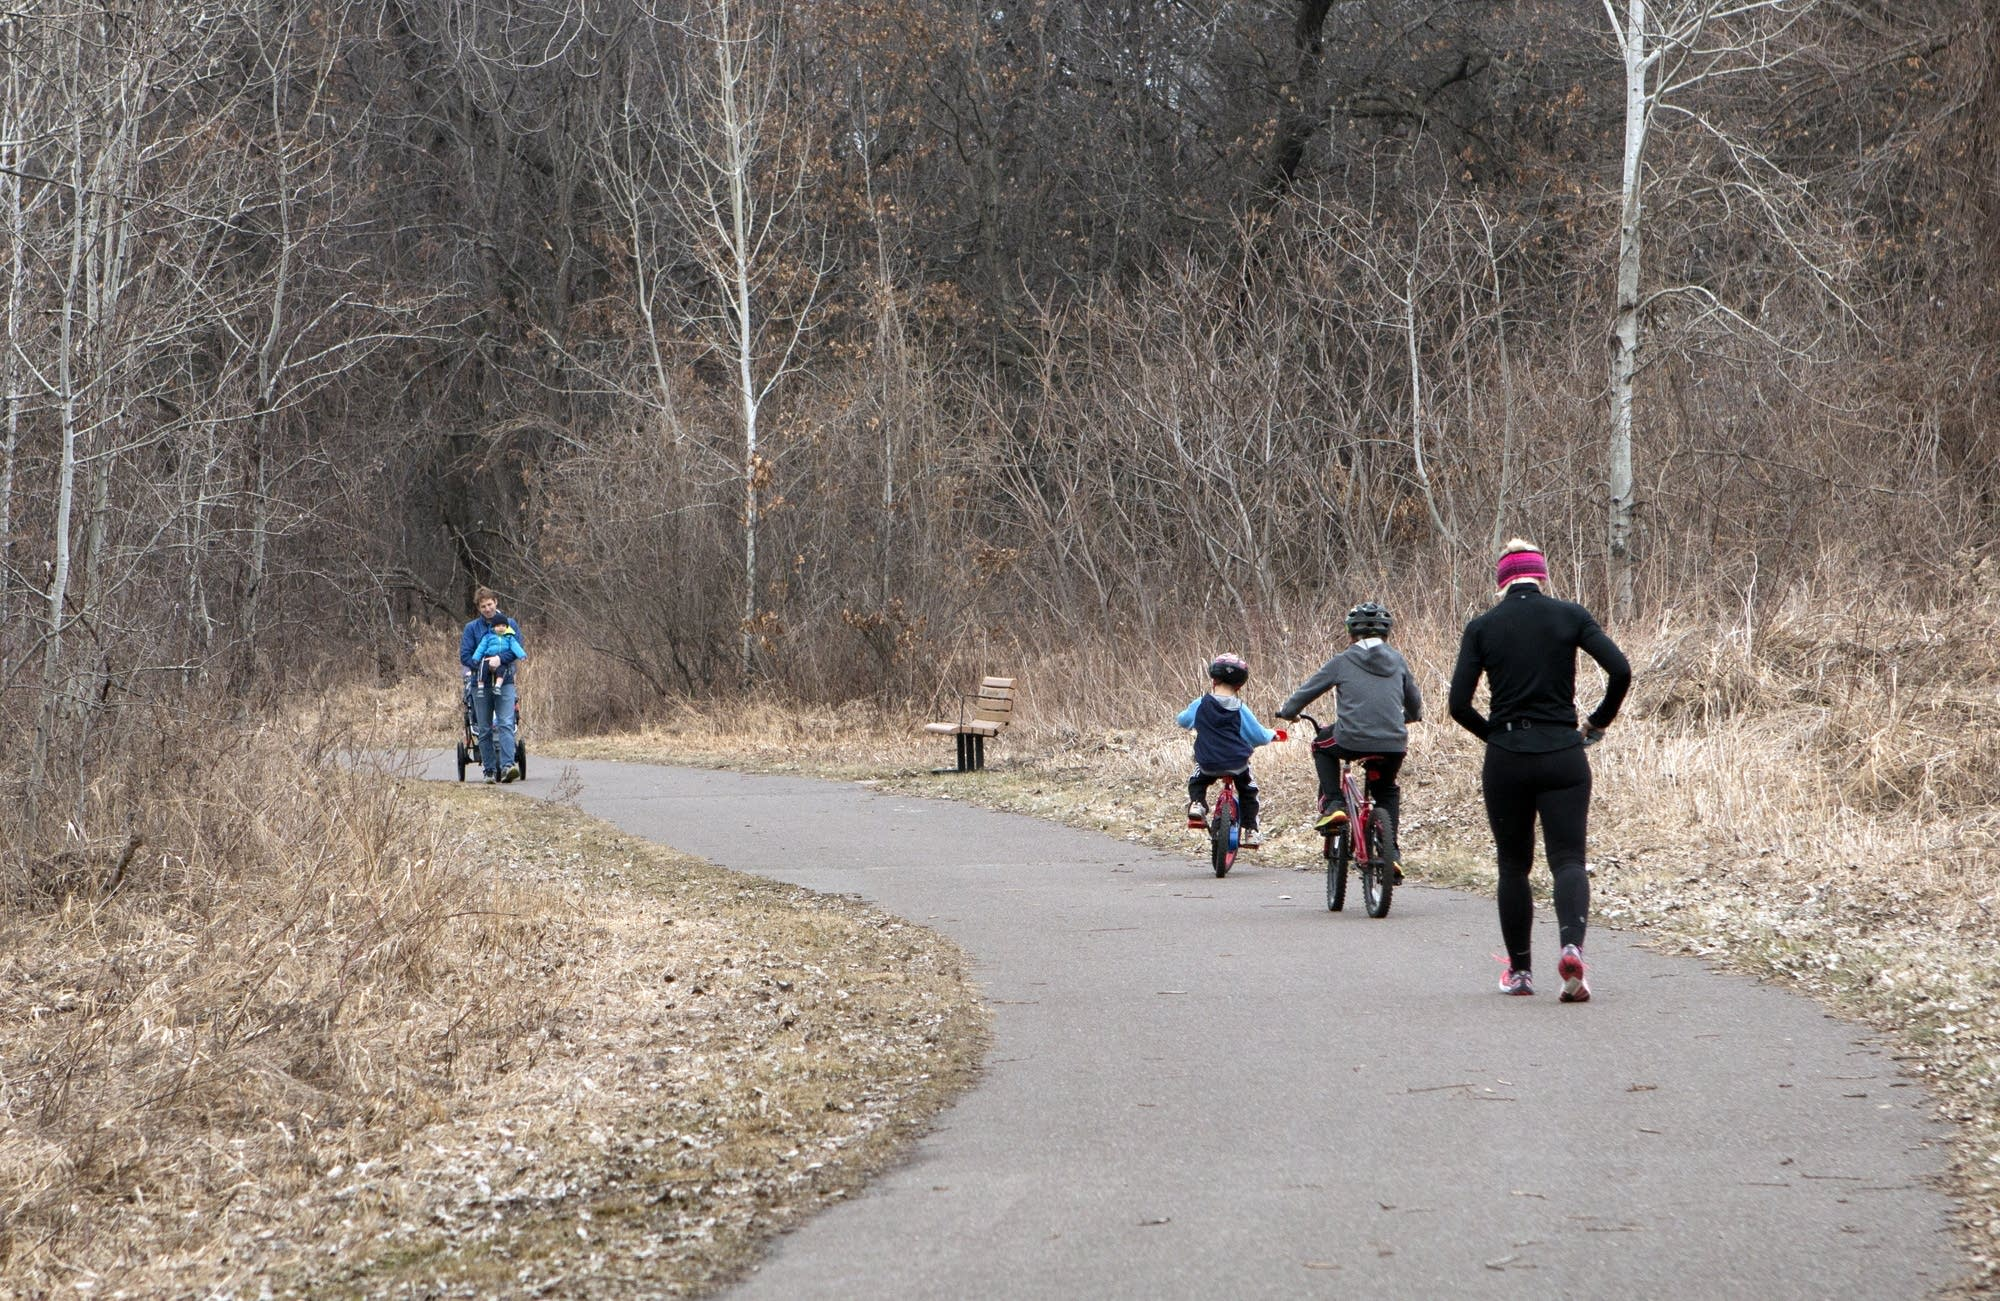 Walkers and bikers fill the trails instead of cross-country skiers.